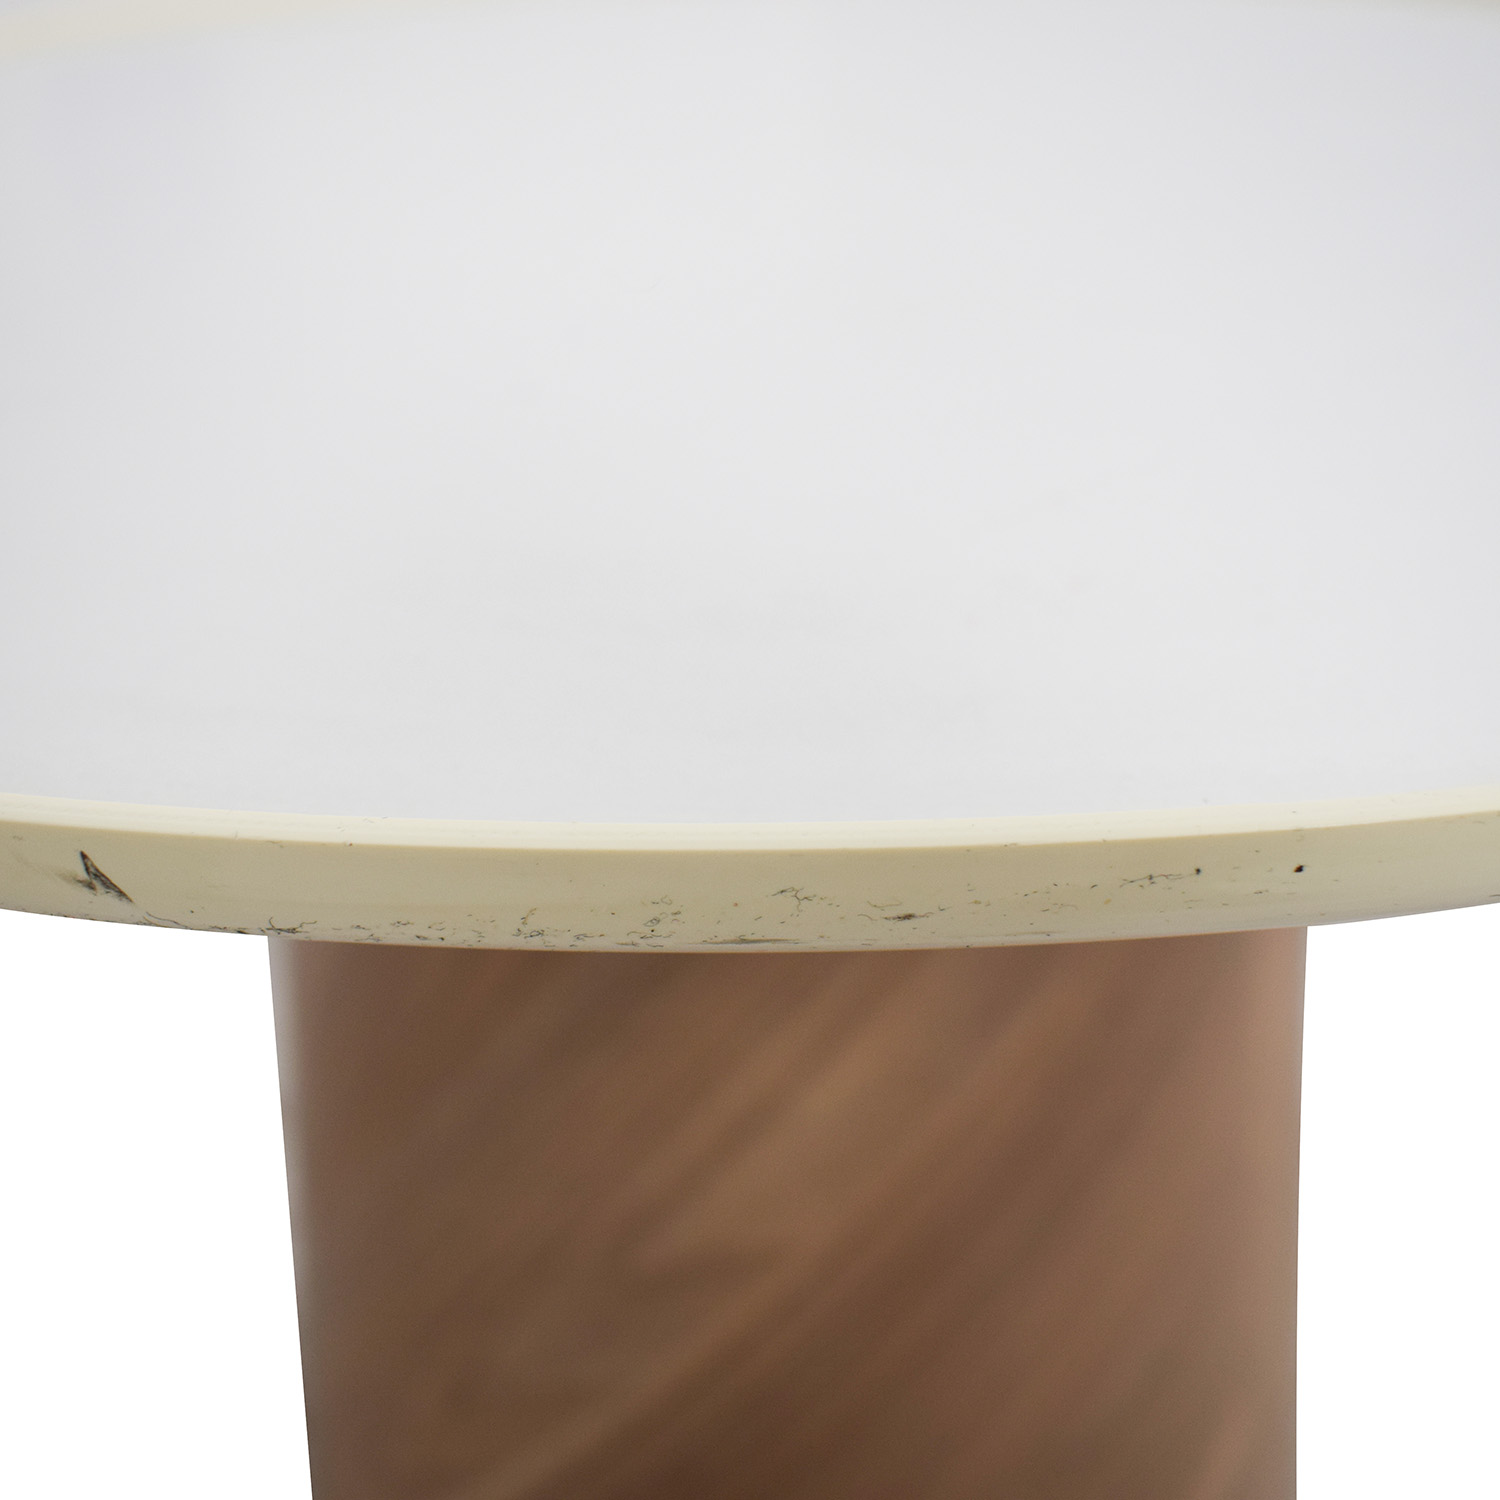 Steelcase Turnstone Steelcase Turnstone Campfire Round Paper Table price